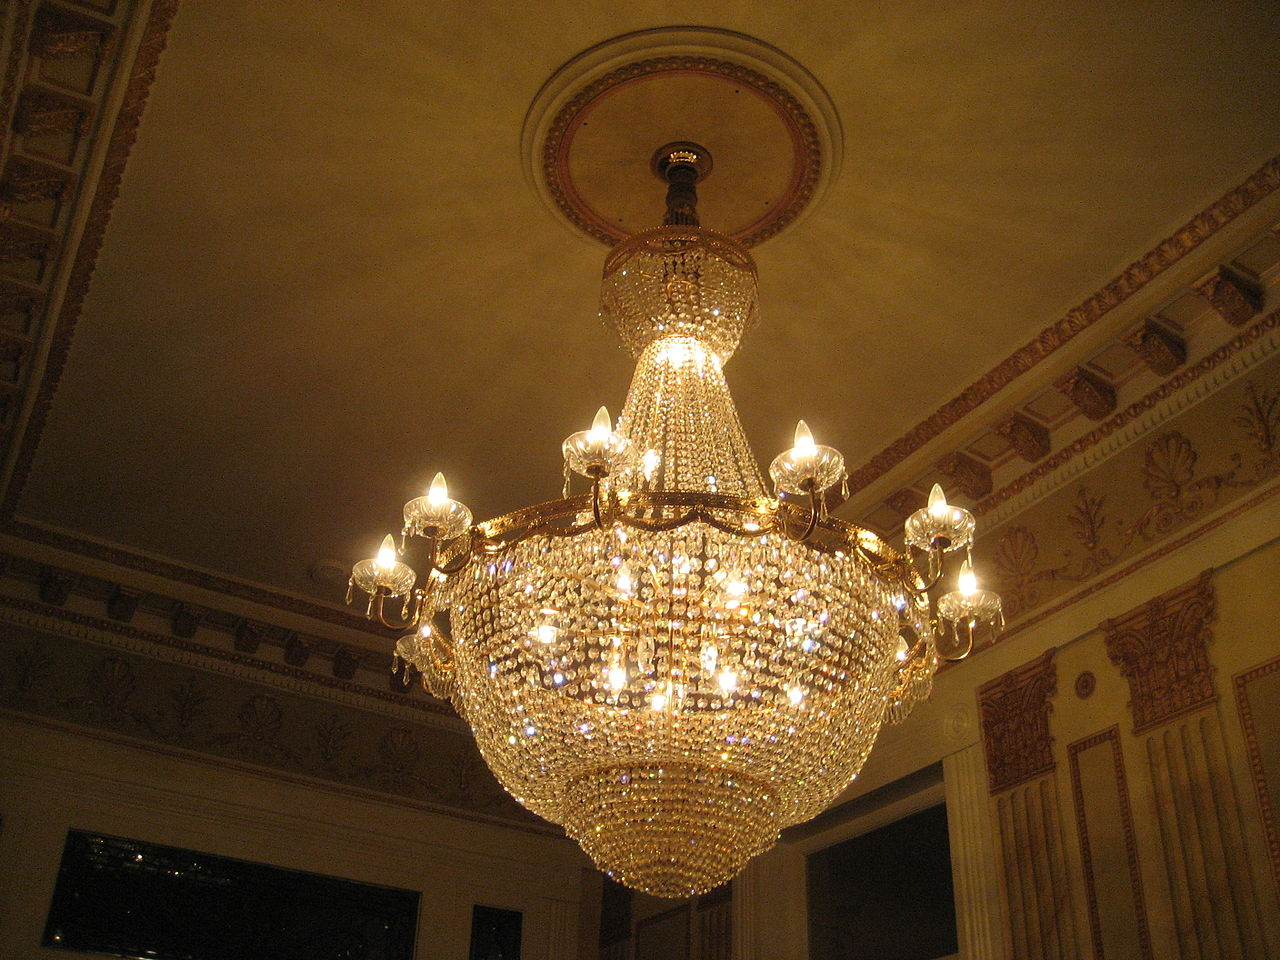 File new orleans garden district ceiling chandelier 2 jpg wikimedia commons - Pictures of chandeliers ...